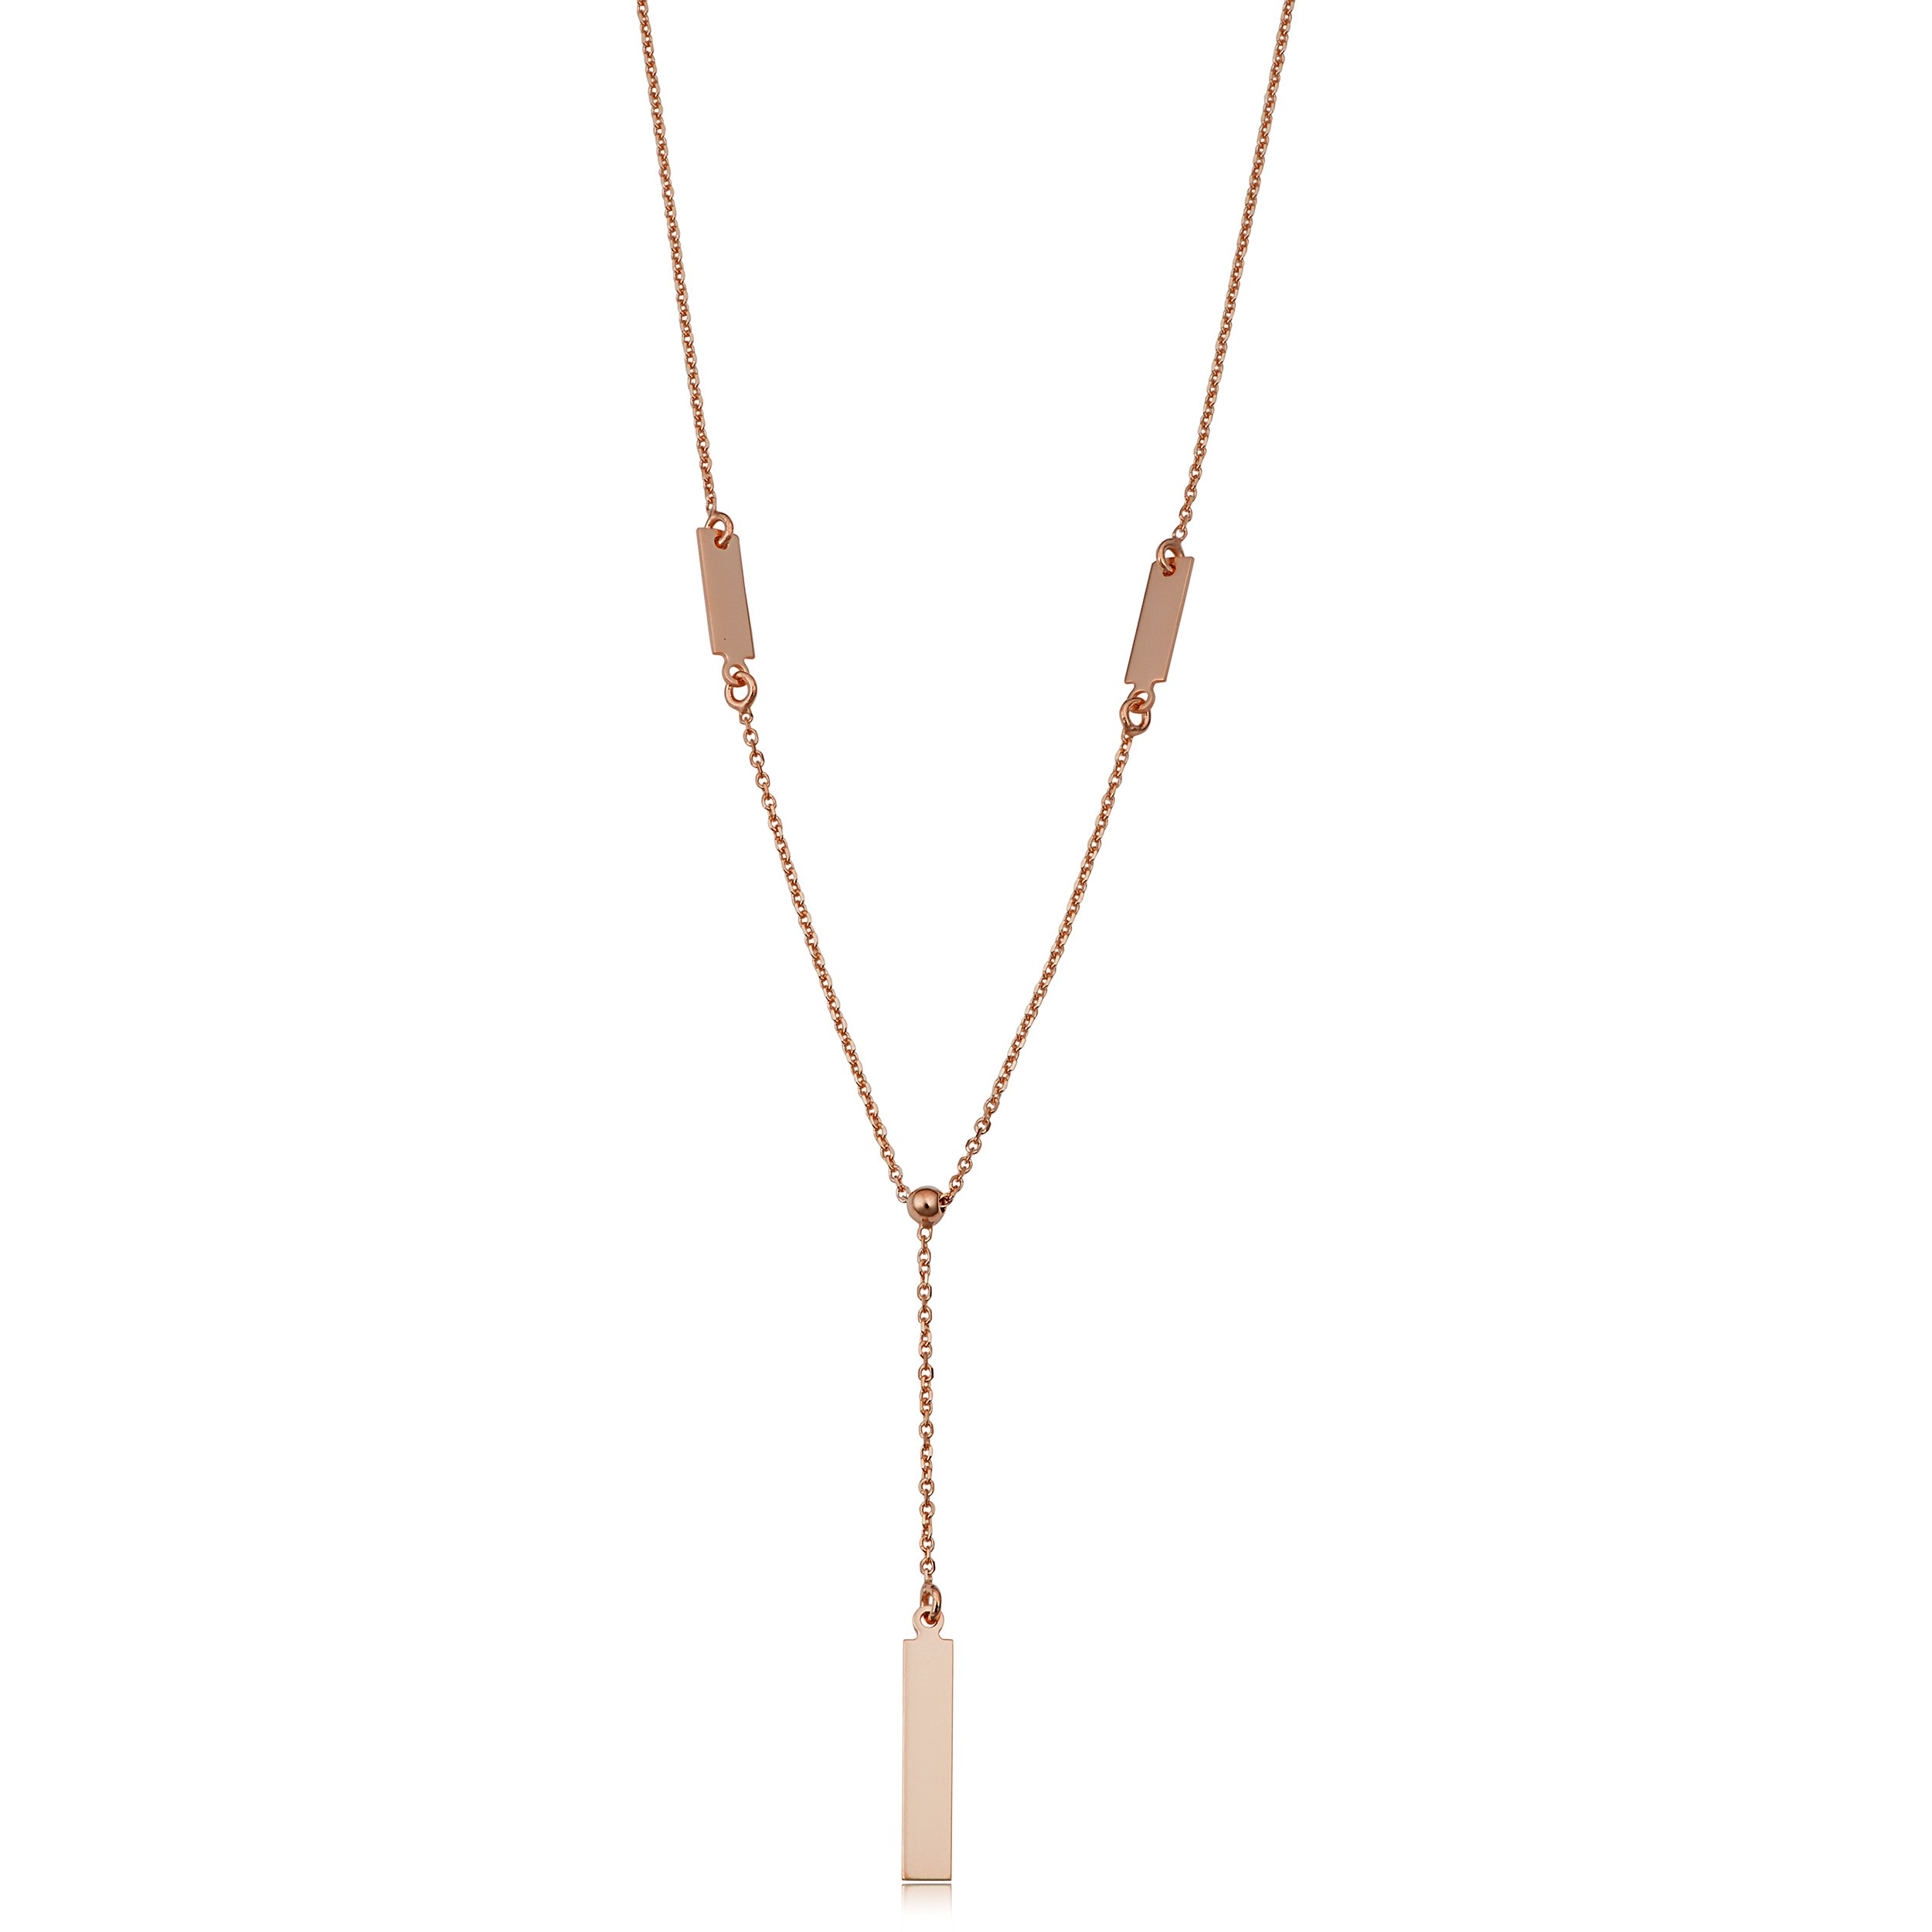 14k Rose Gold Bar Drop Adjustable Length Y Necklace (adjusts to 17'' or 18'')